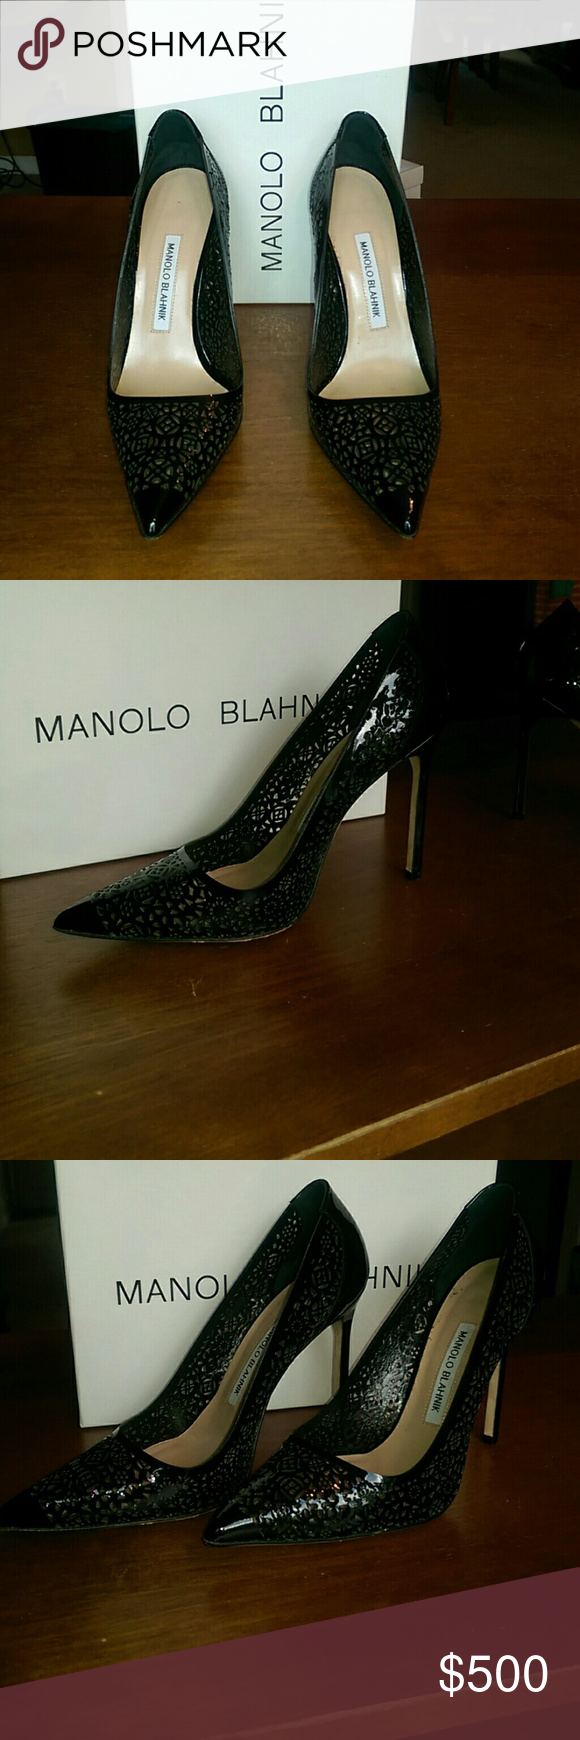 Manolo Blahnik Black Patent Laser Cut Pump Manolo Blahnik Black Patent Laser Cut Pump. Runs 1 size small. If you wear a size 8, these will fit perfectly. These shoes have a narrow fit. 4 inch heel Manolo Blahnik Shoes Heels